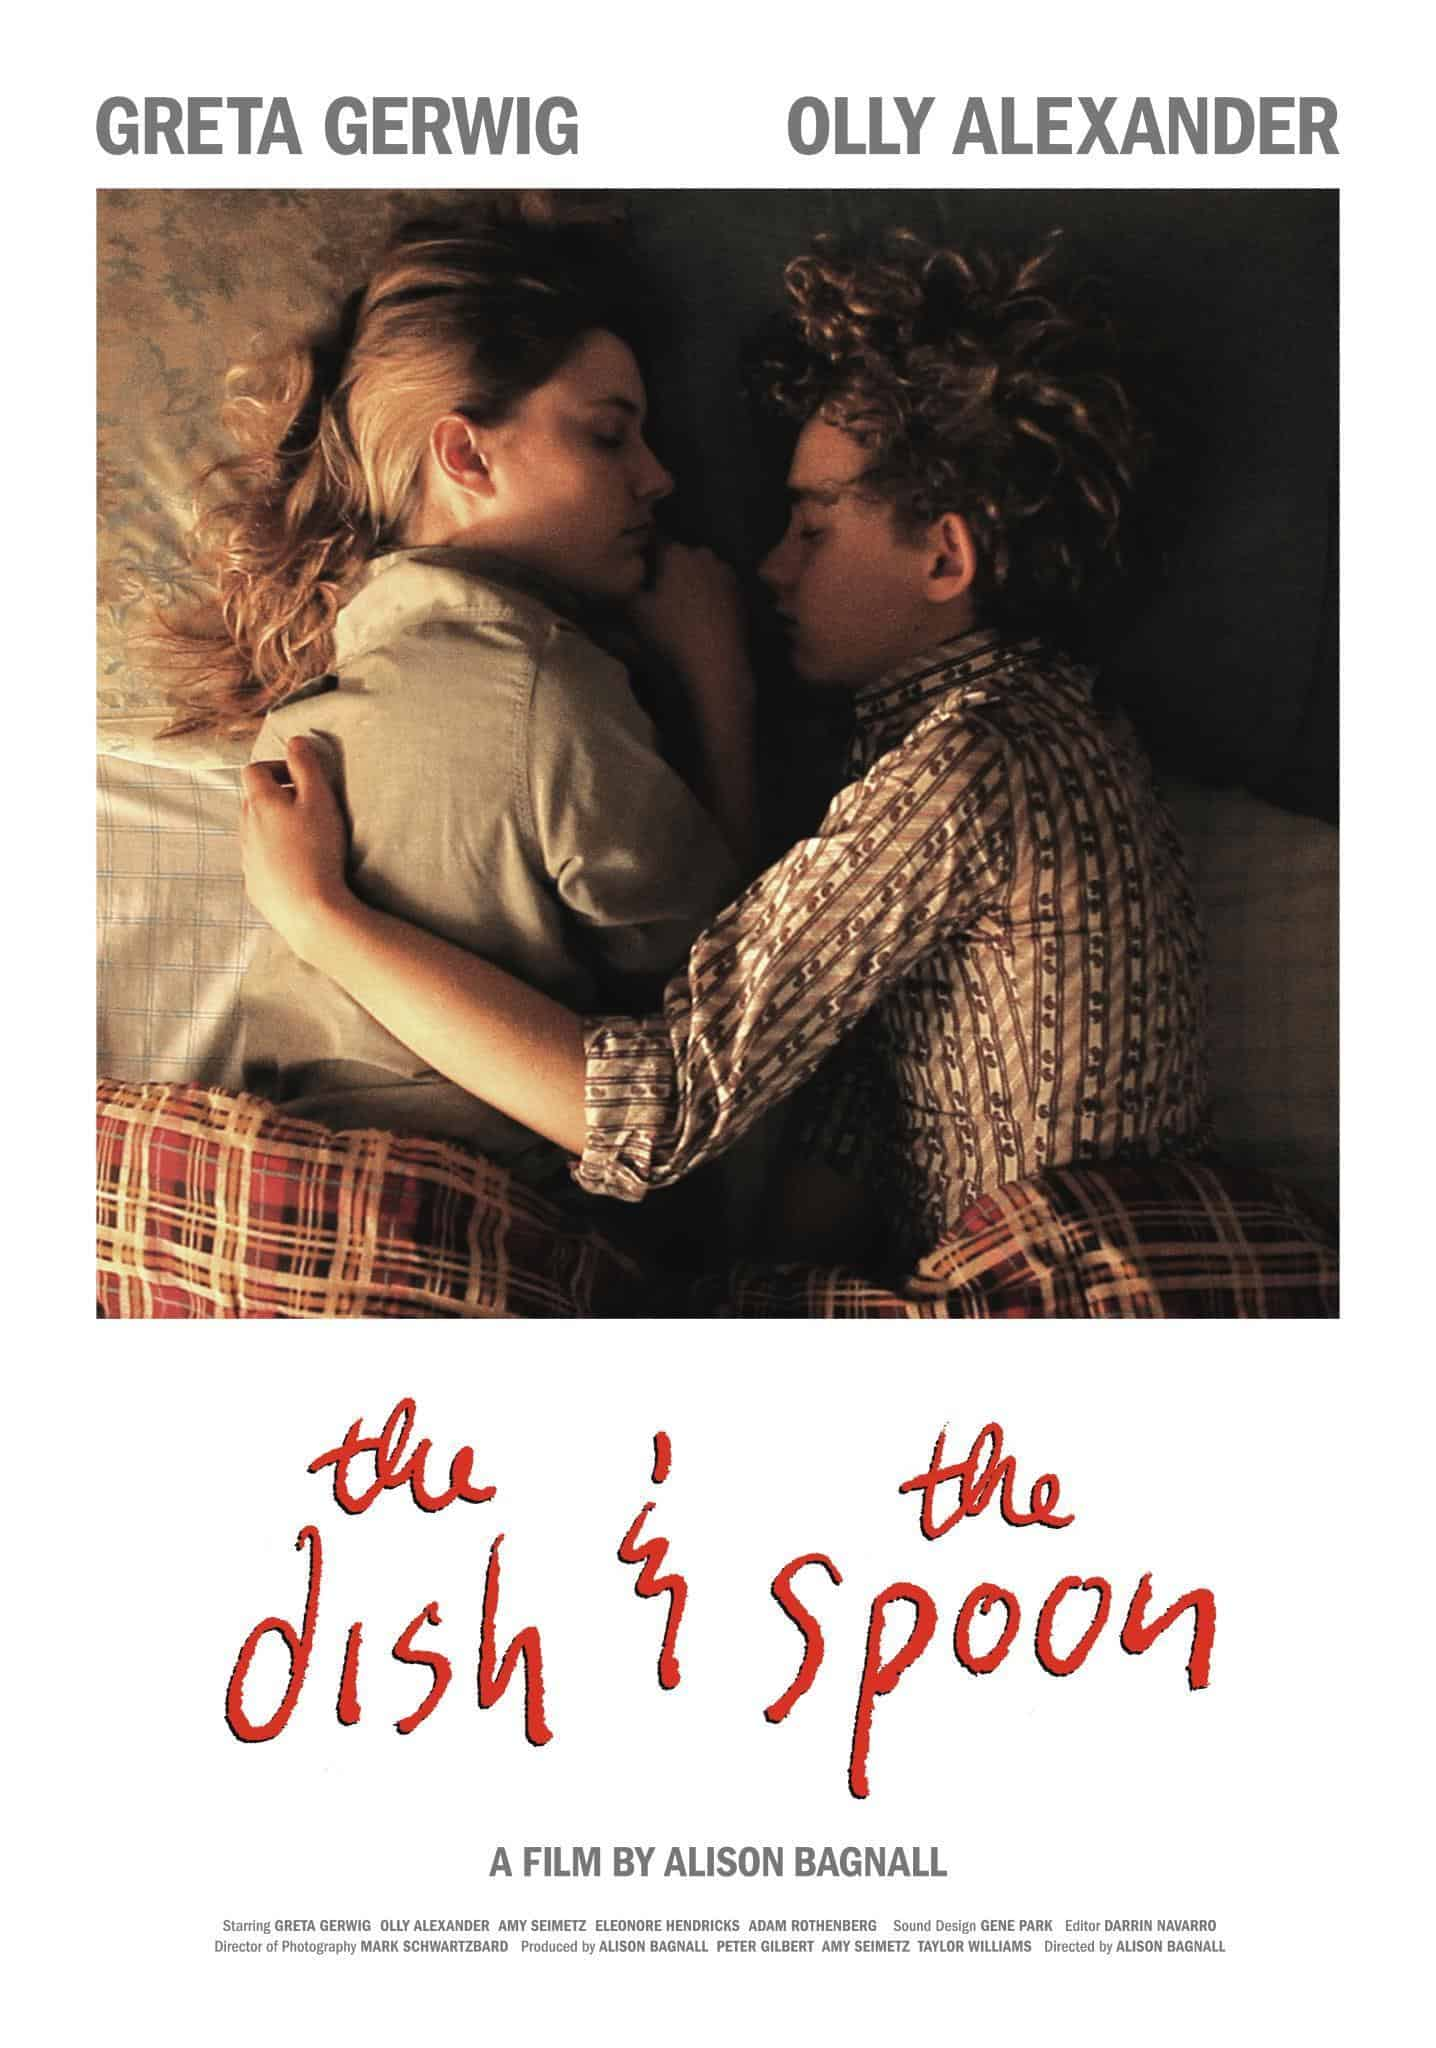 The Dish and the Spoon, 2011